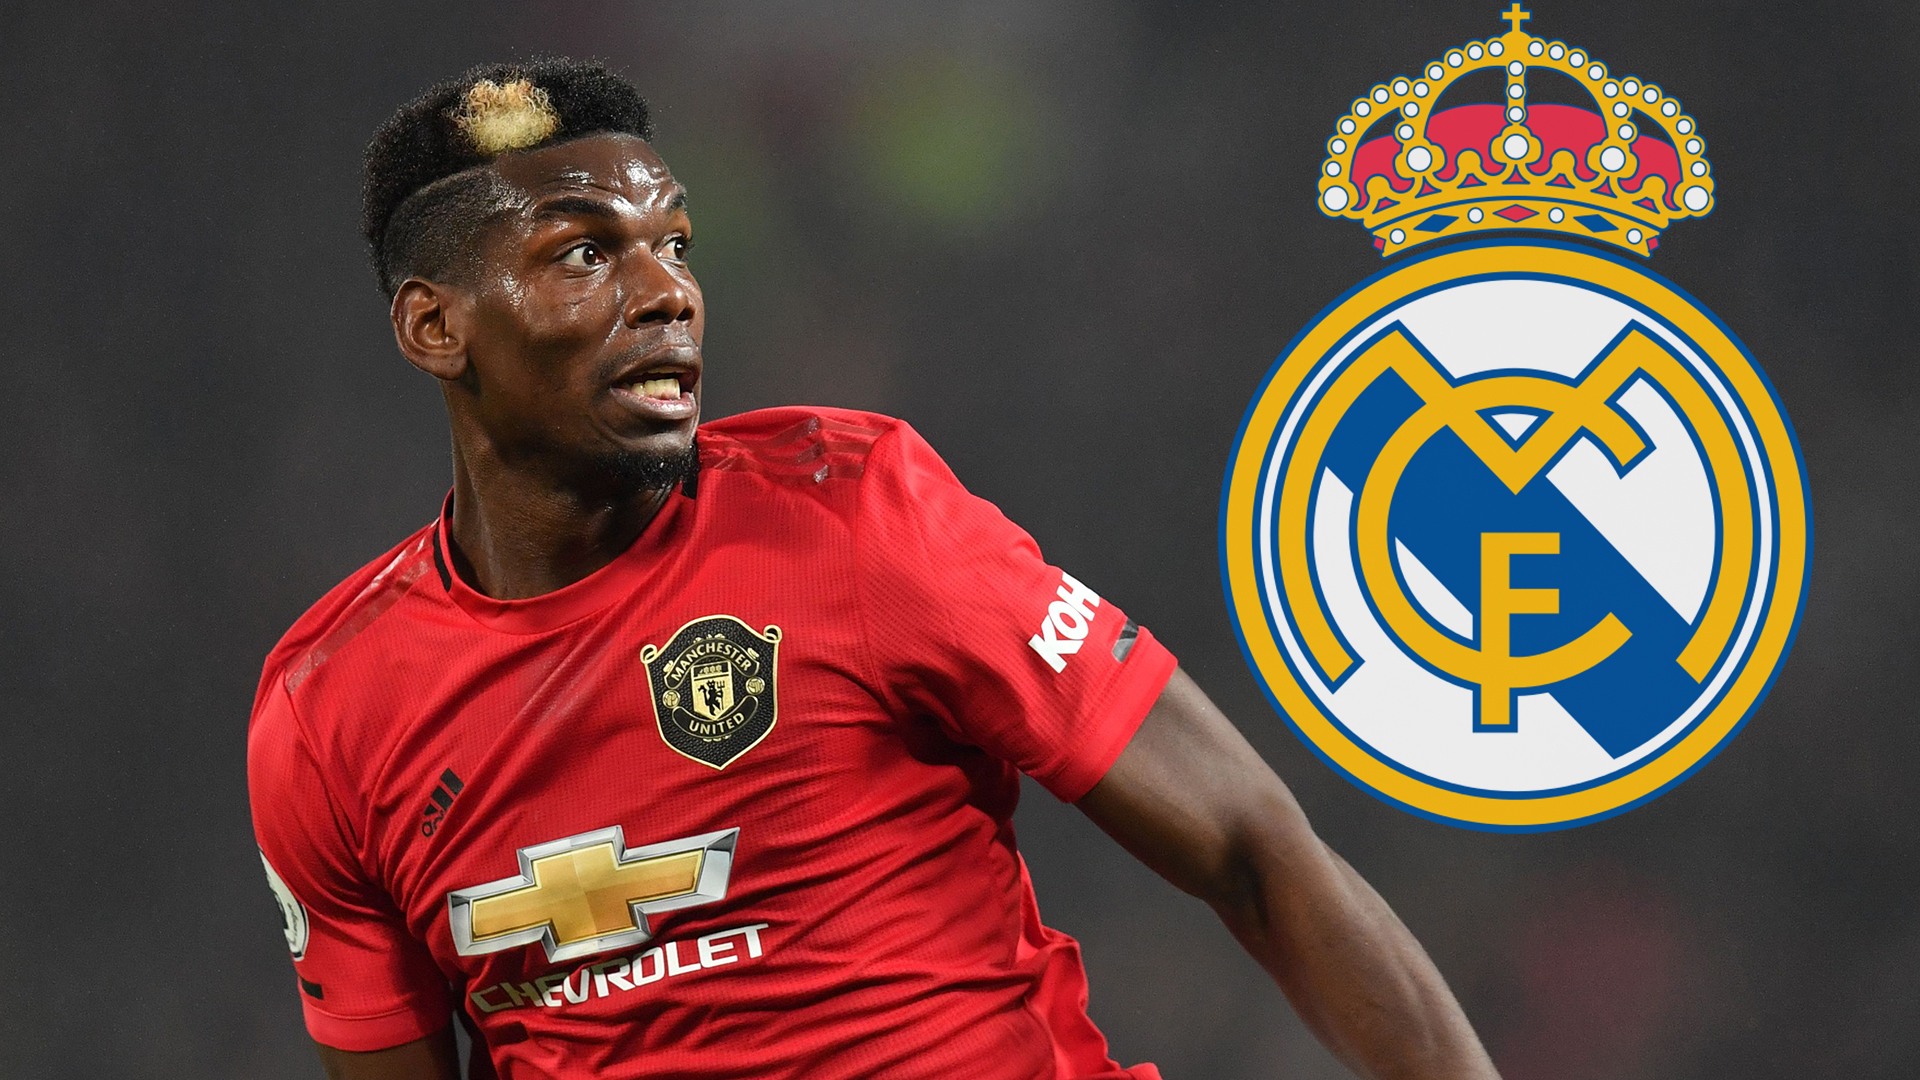 'Pogba can give Real Madrid what they're missing' – La Liga move 'ideal' for Manchester United star, says Dugarry